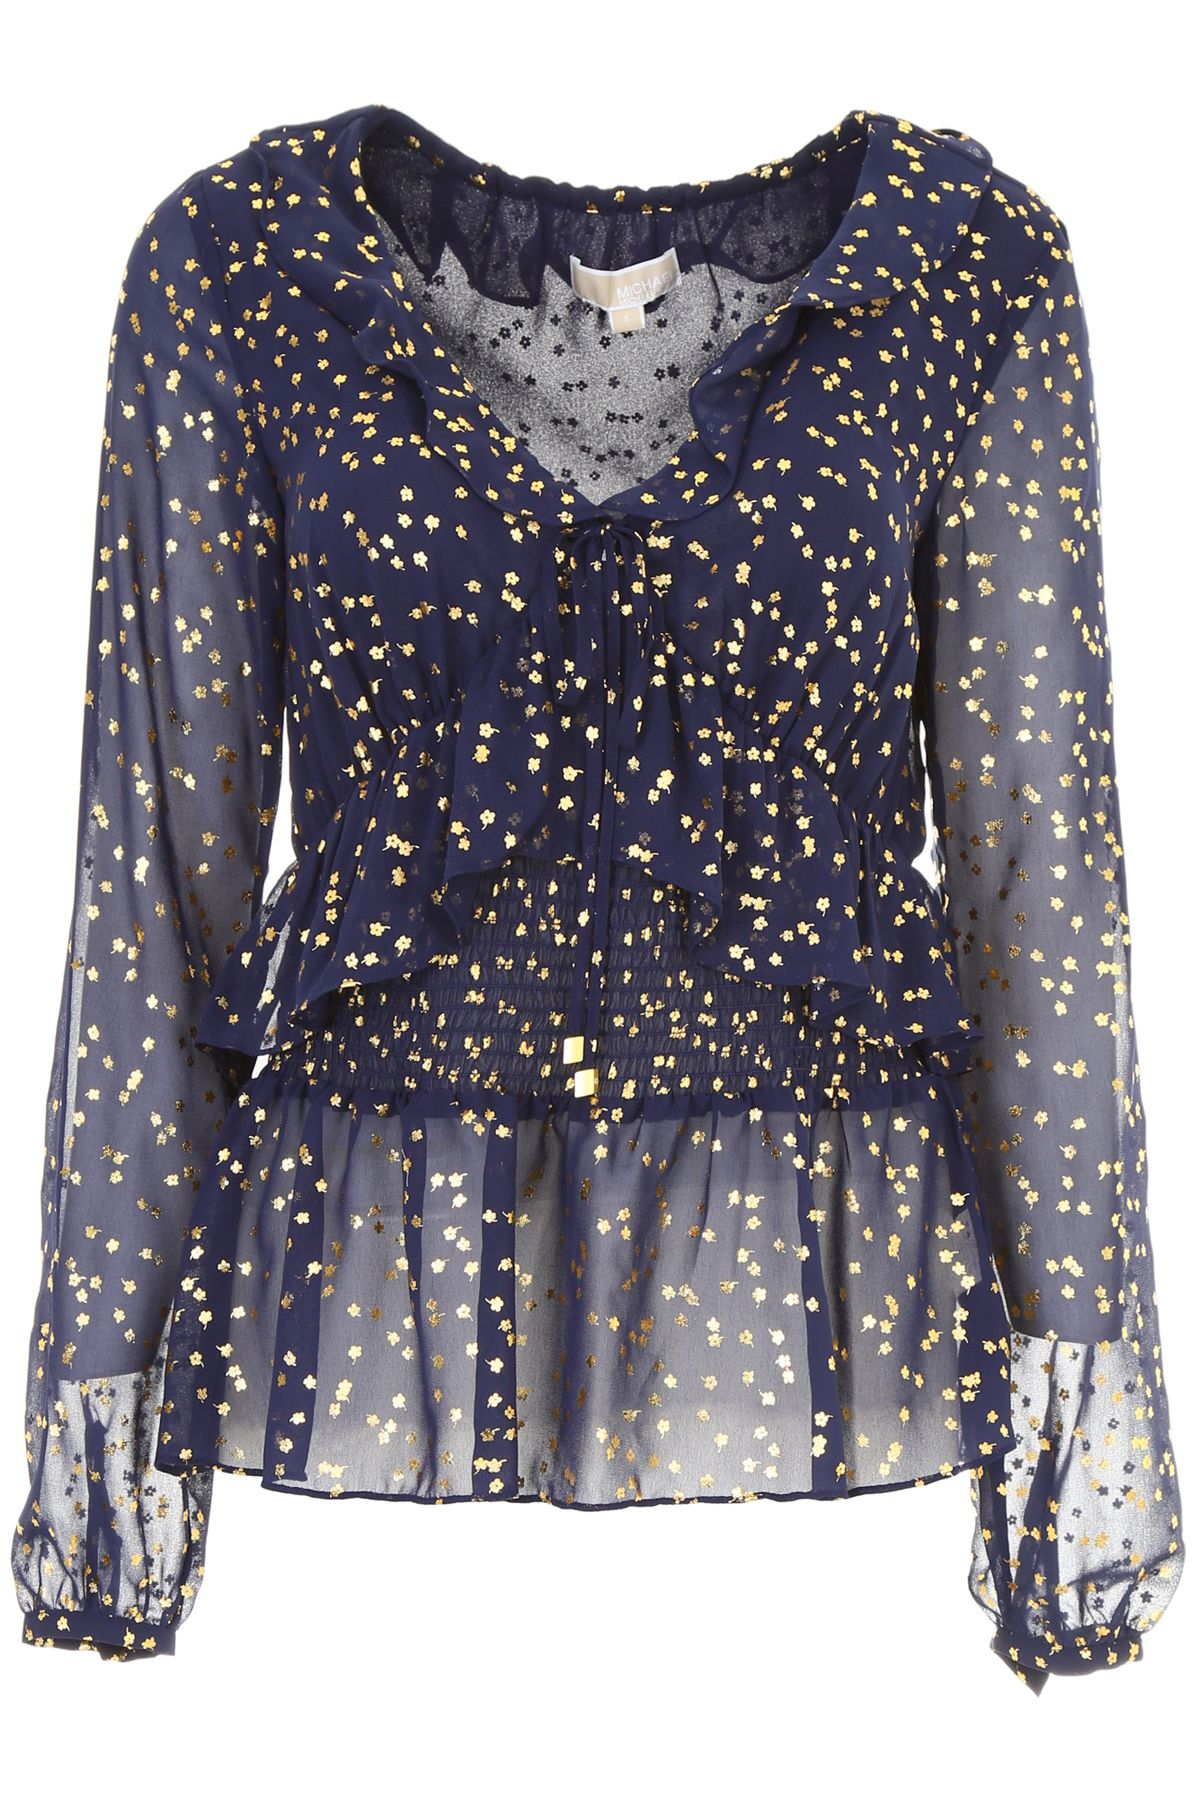 MICHAEL Michael Kors Long-sleeved Top With Gold Flowers